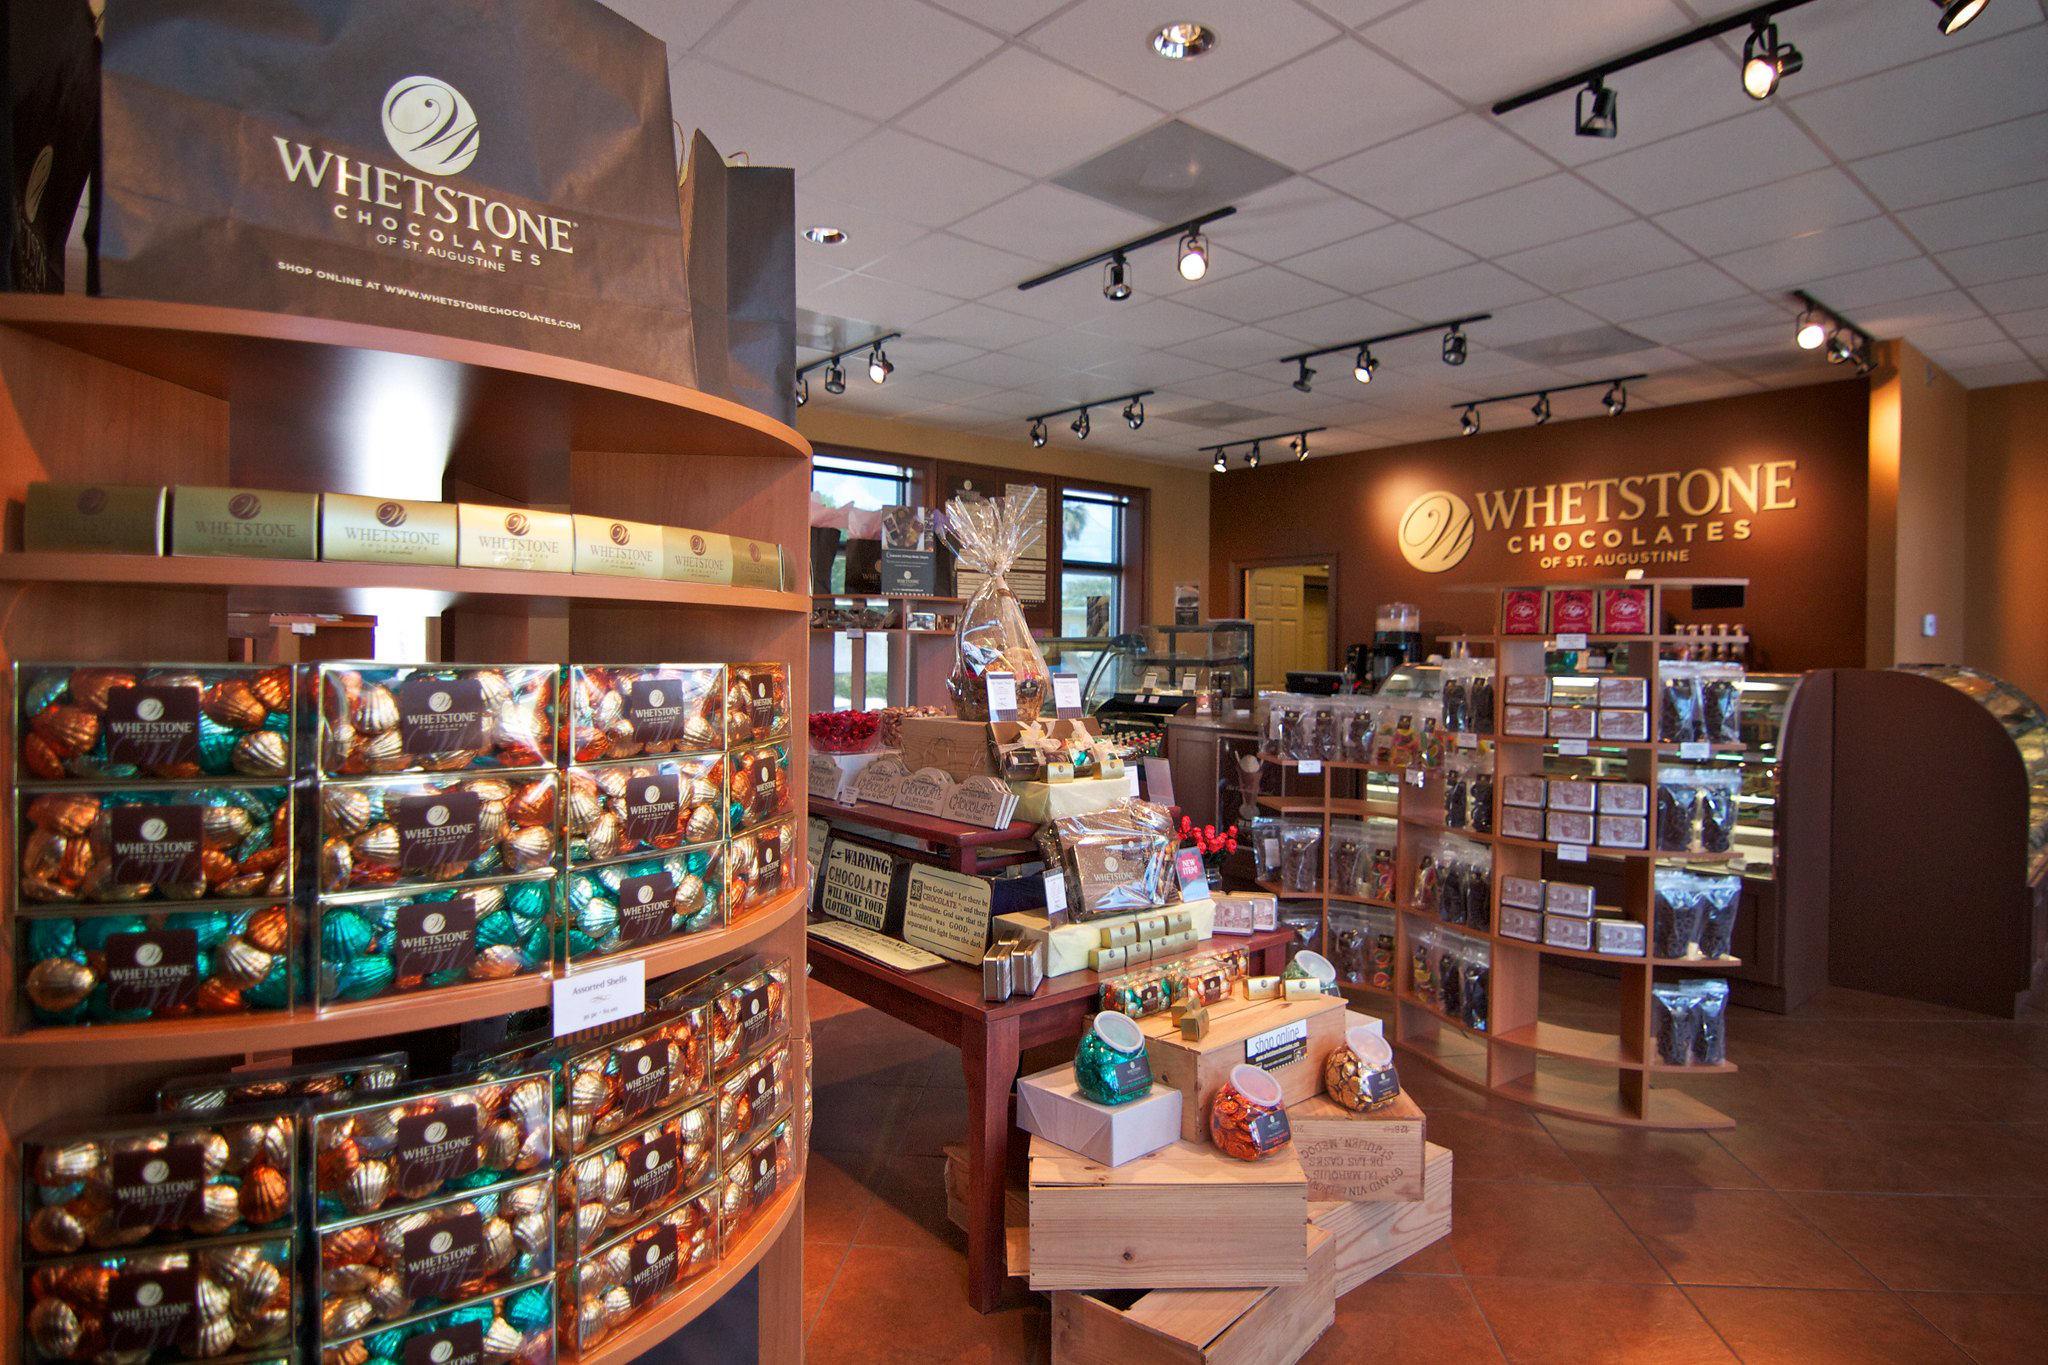 Inside the Whetstone Chocolate Shop